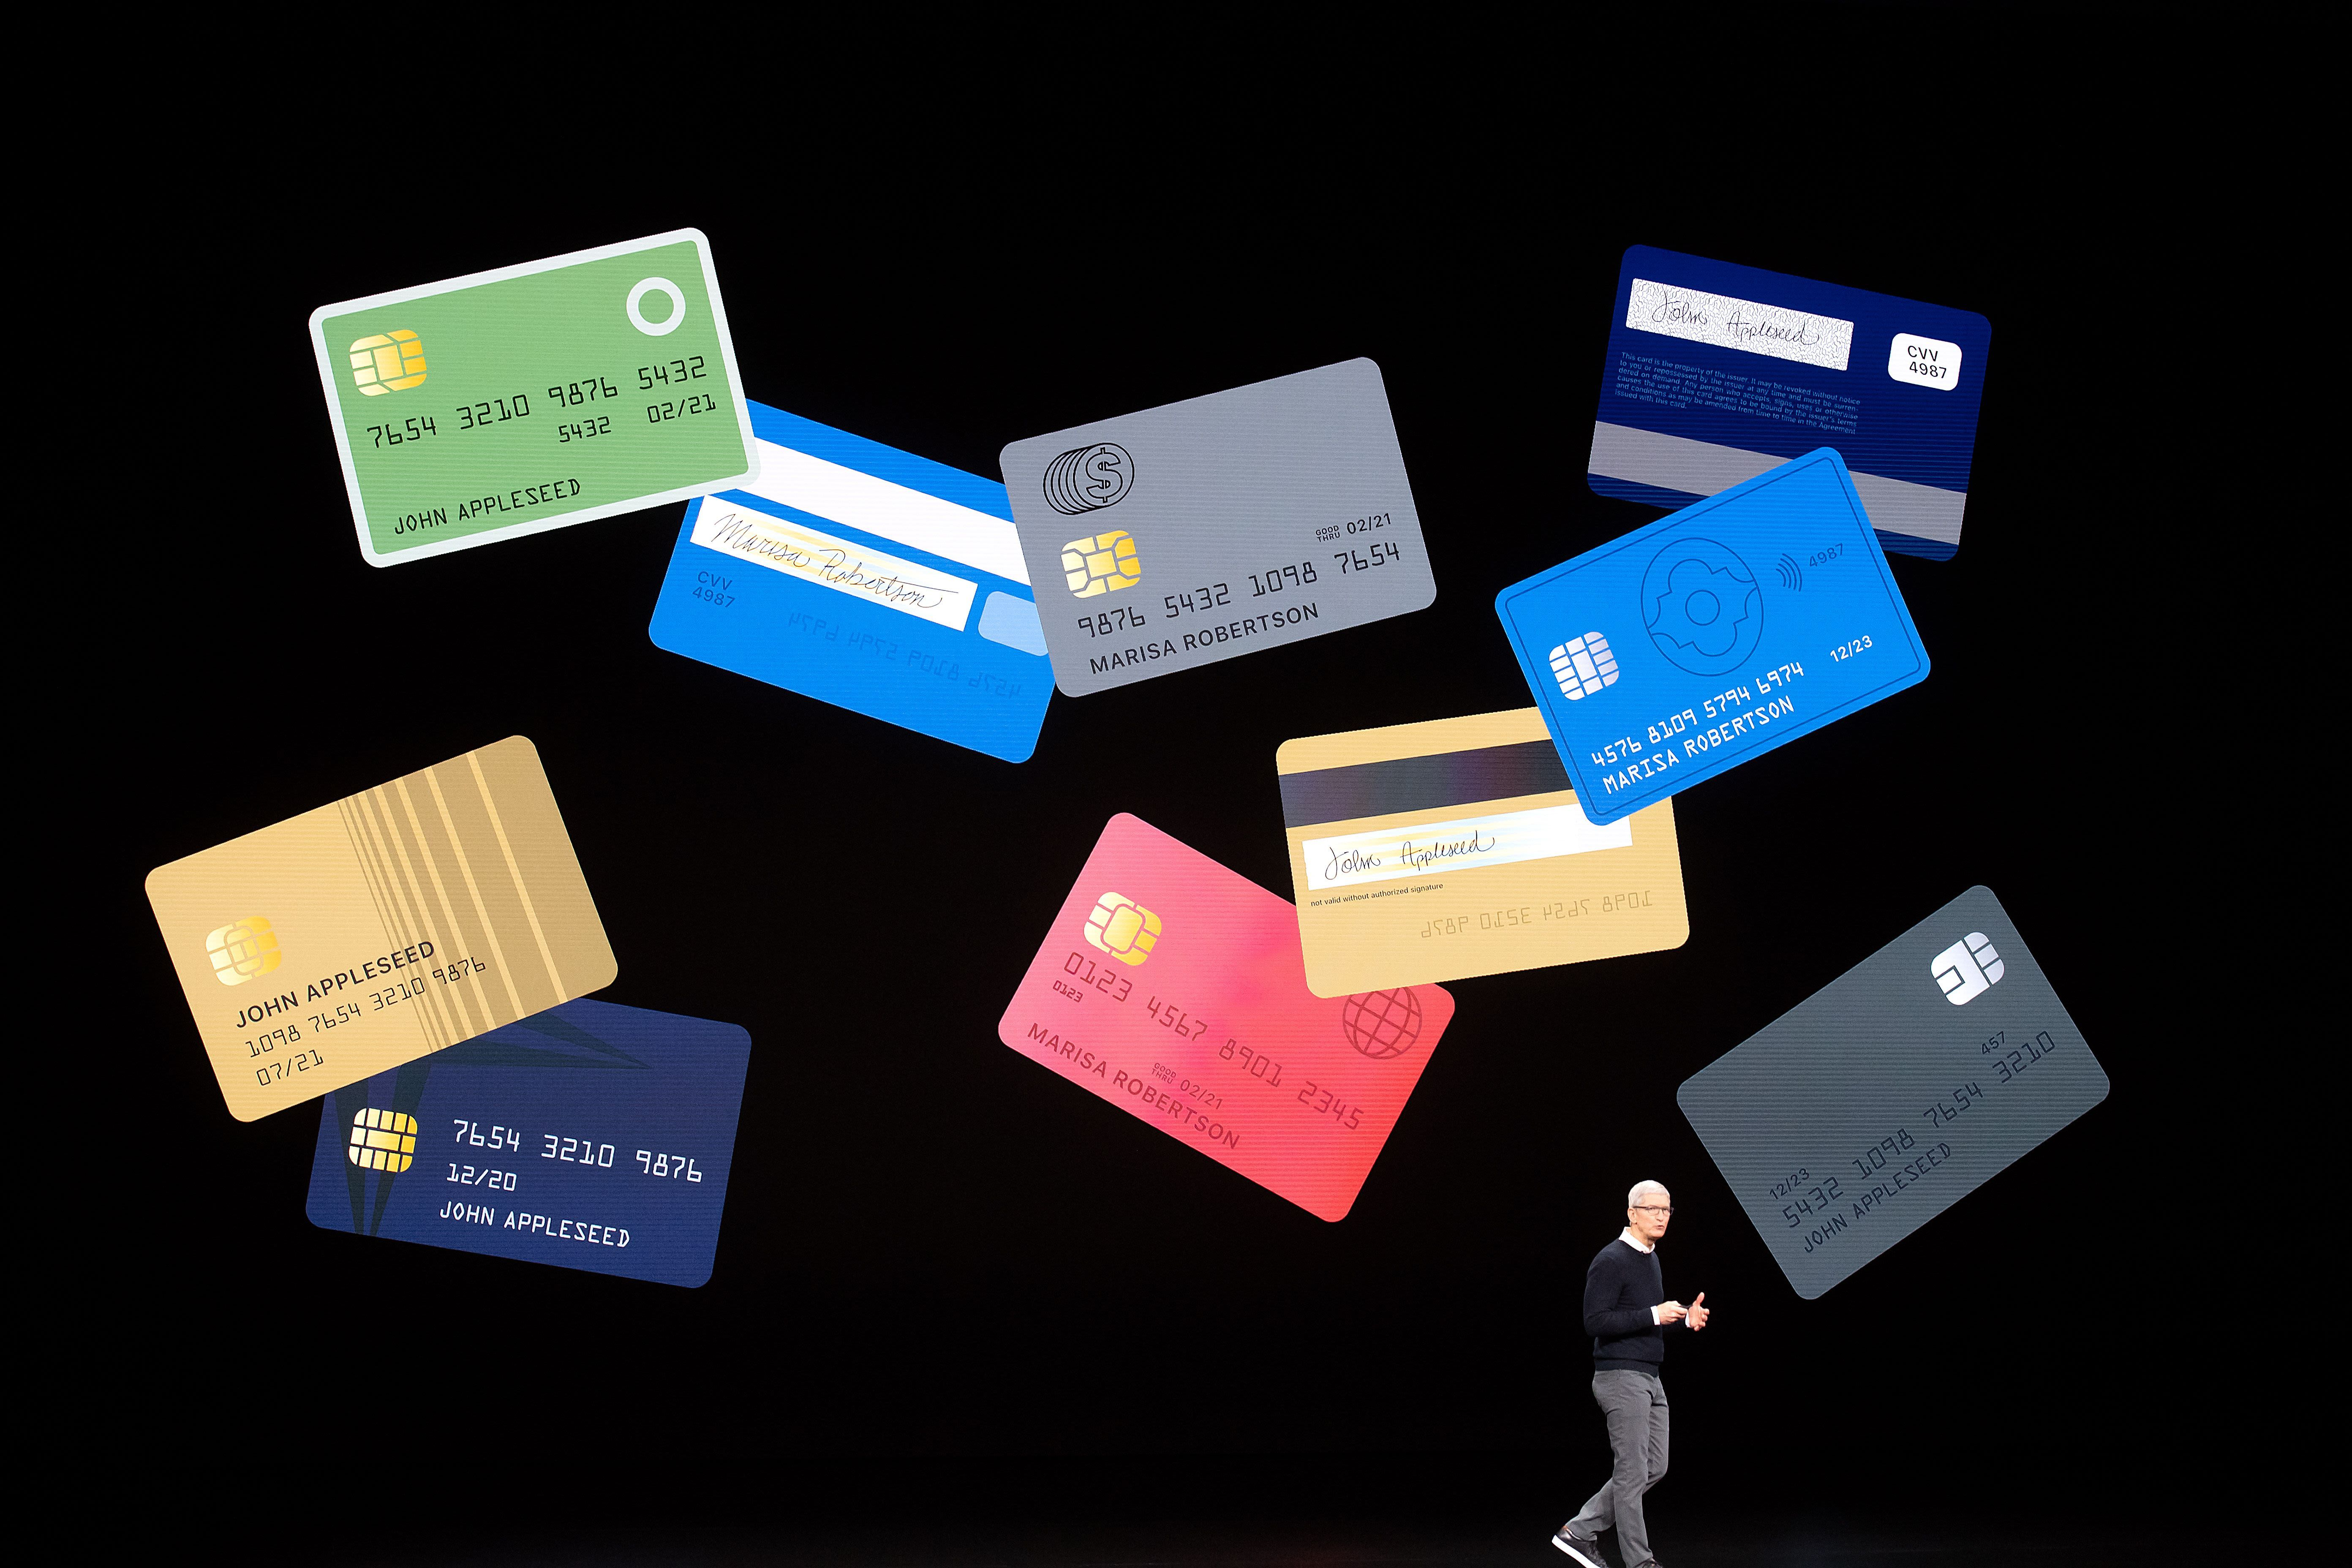 A Goldman Sachs rival pulled out of the Apple Card deal on